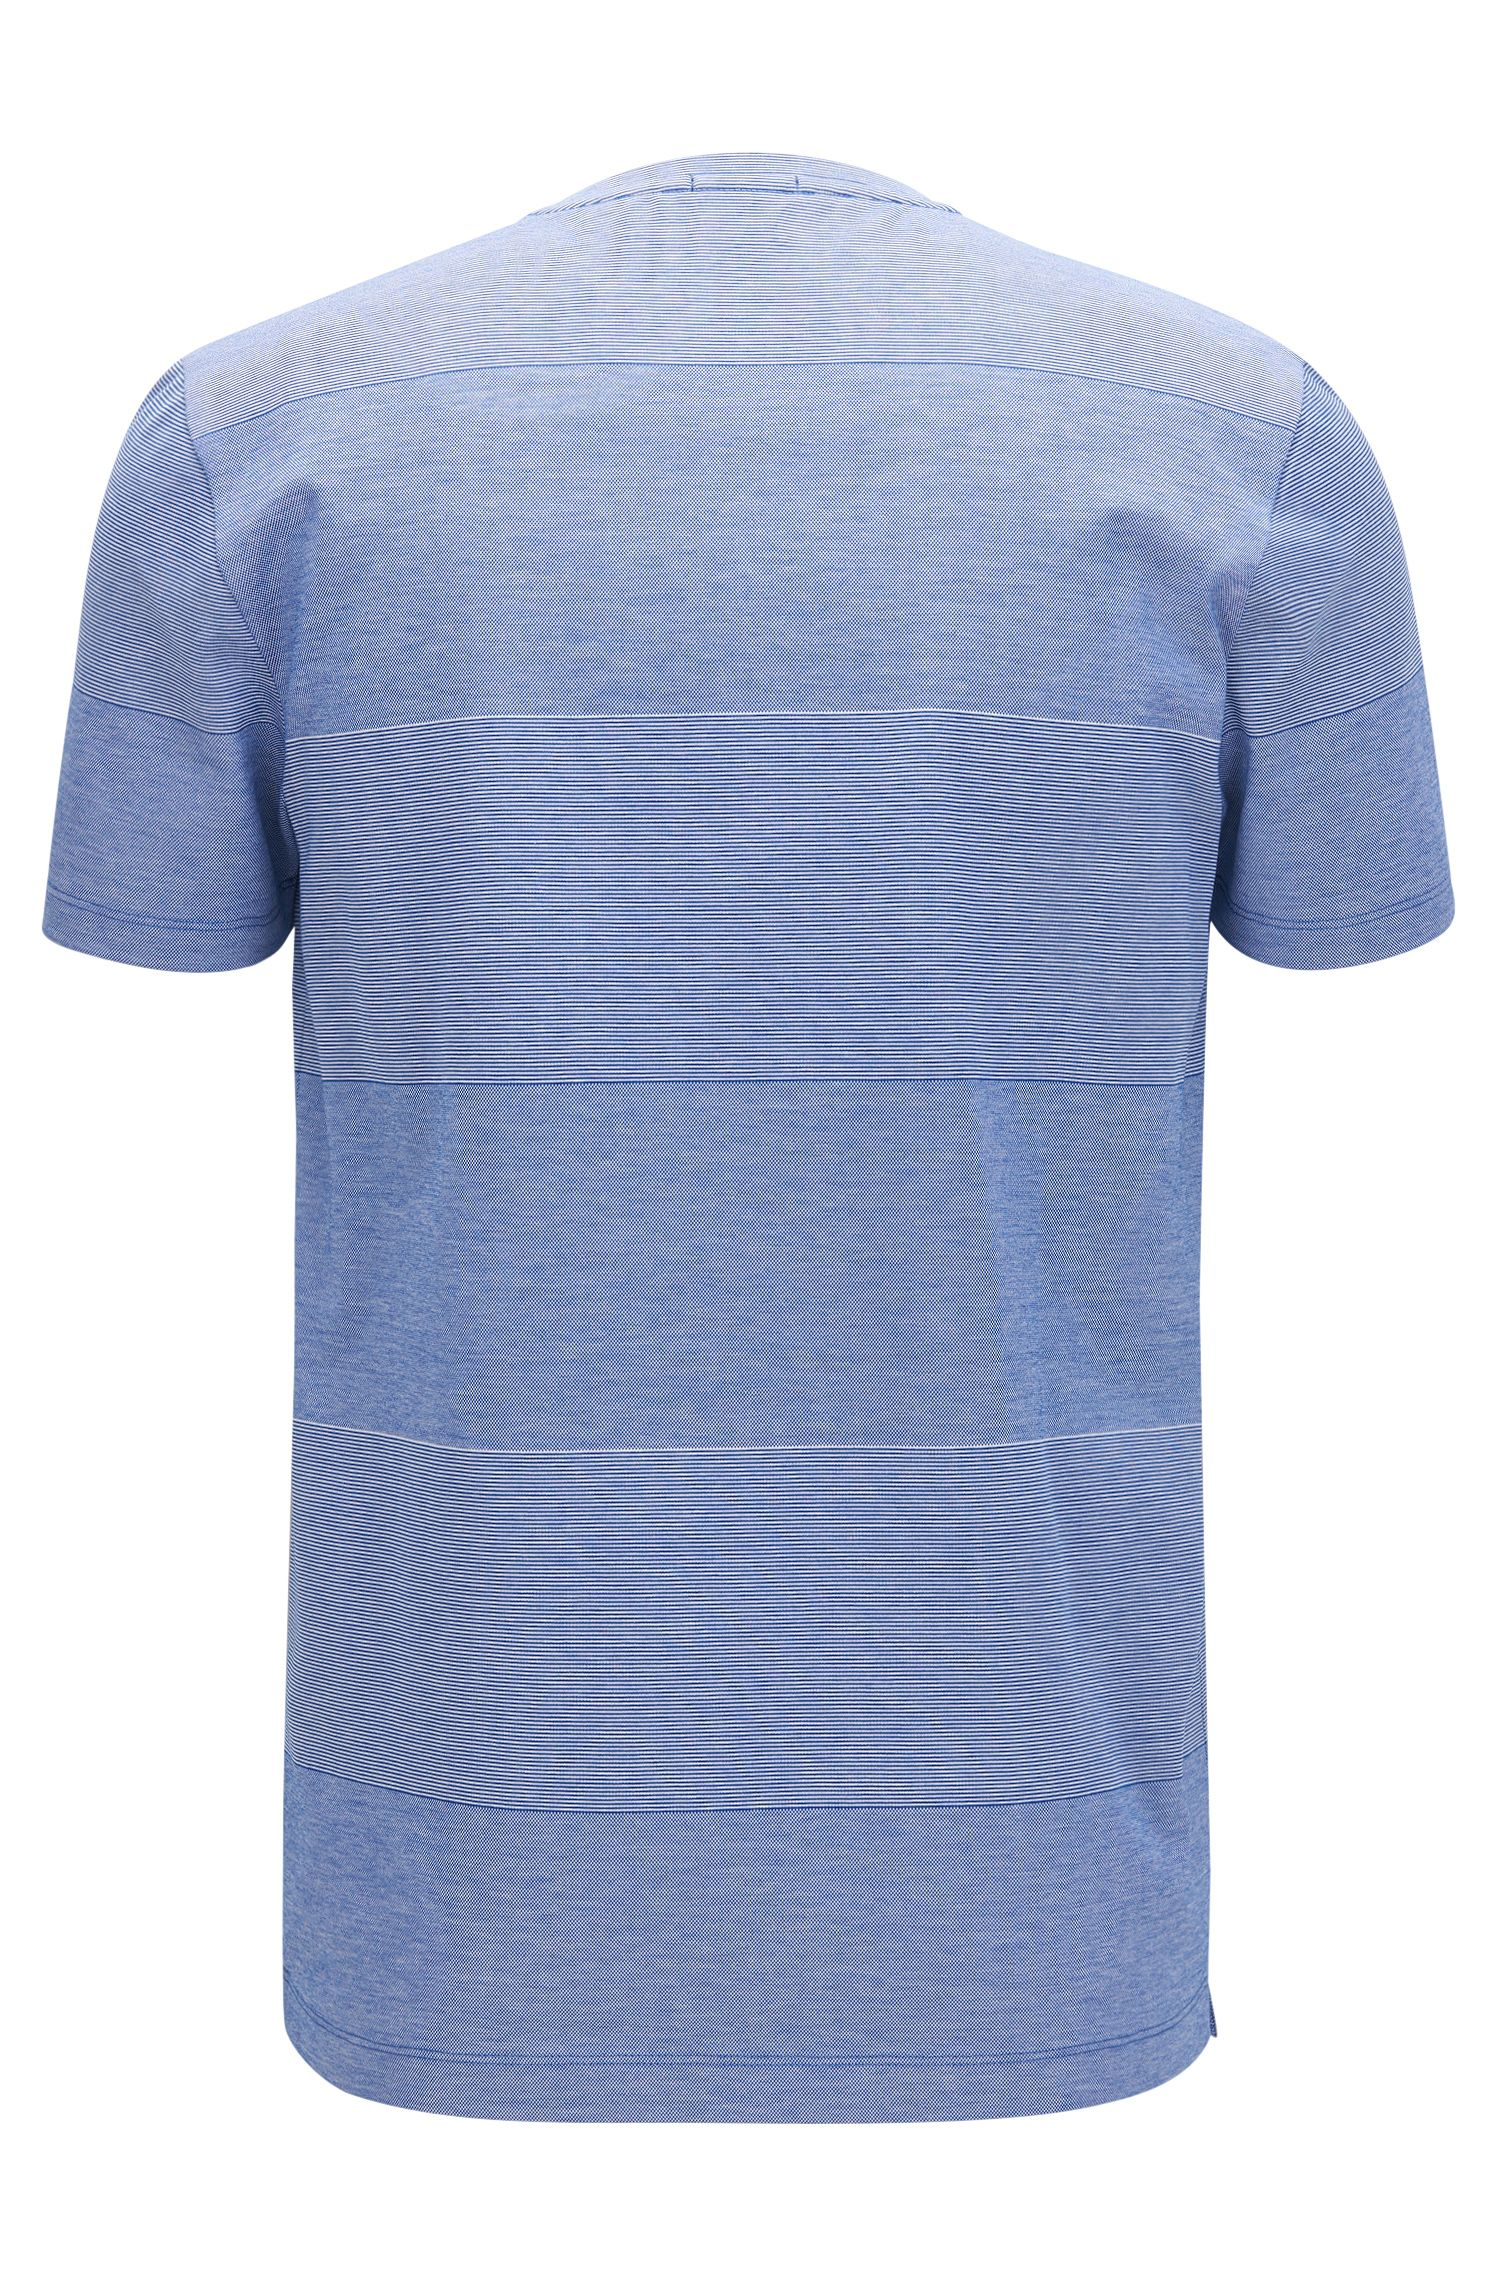 Striped Mercerized Cotton T-Shirt | Teal